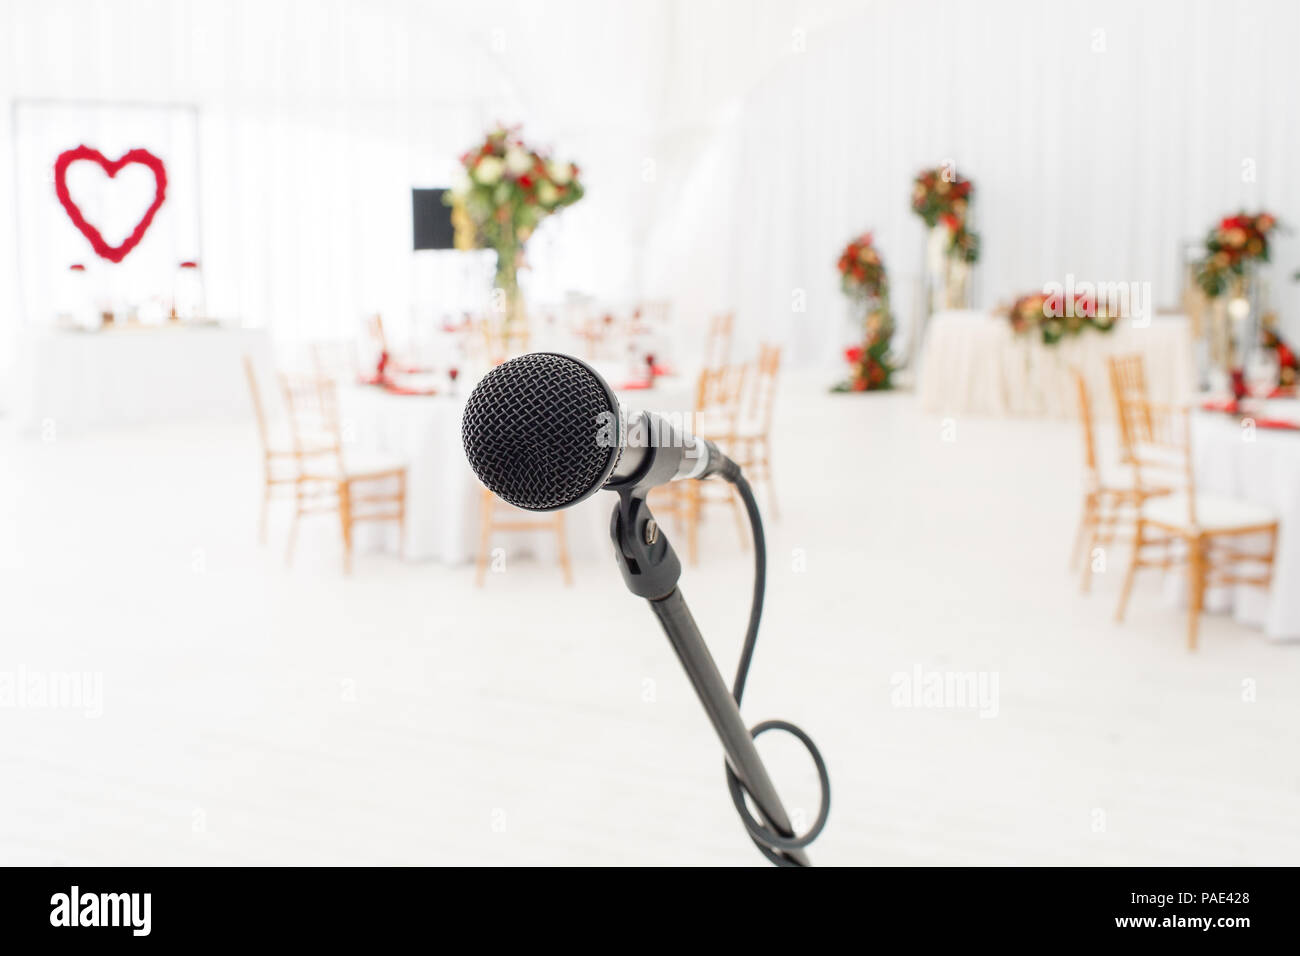 dc76778d6acc5 Microphone close-up. Focus on mic. Abstract blurred conference hall or  wedding banquet